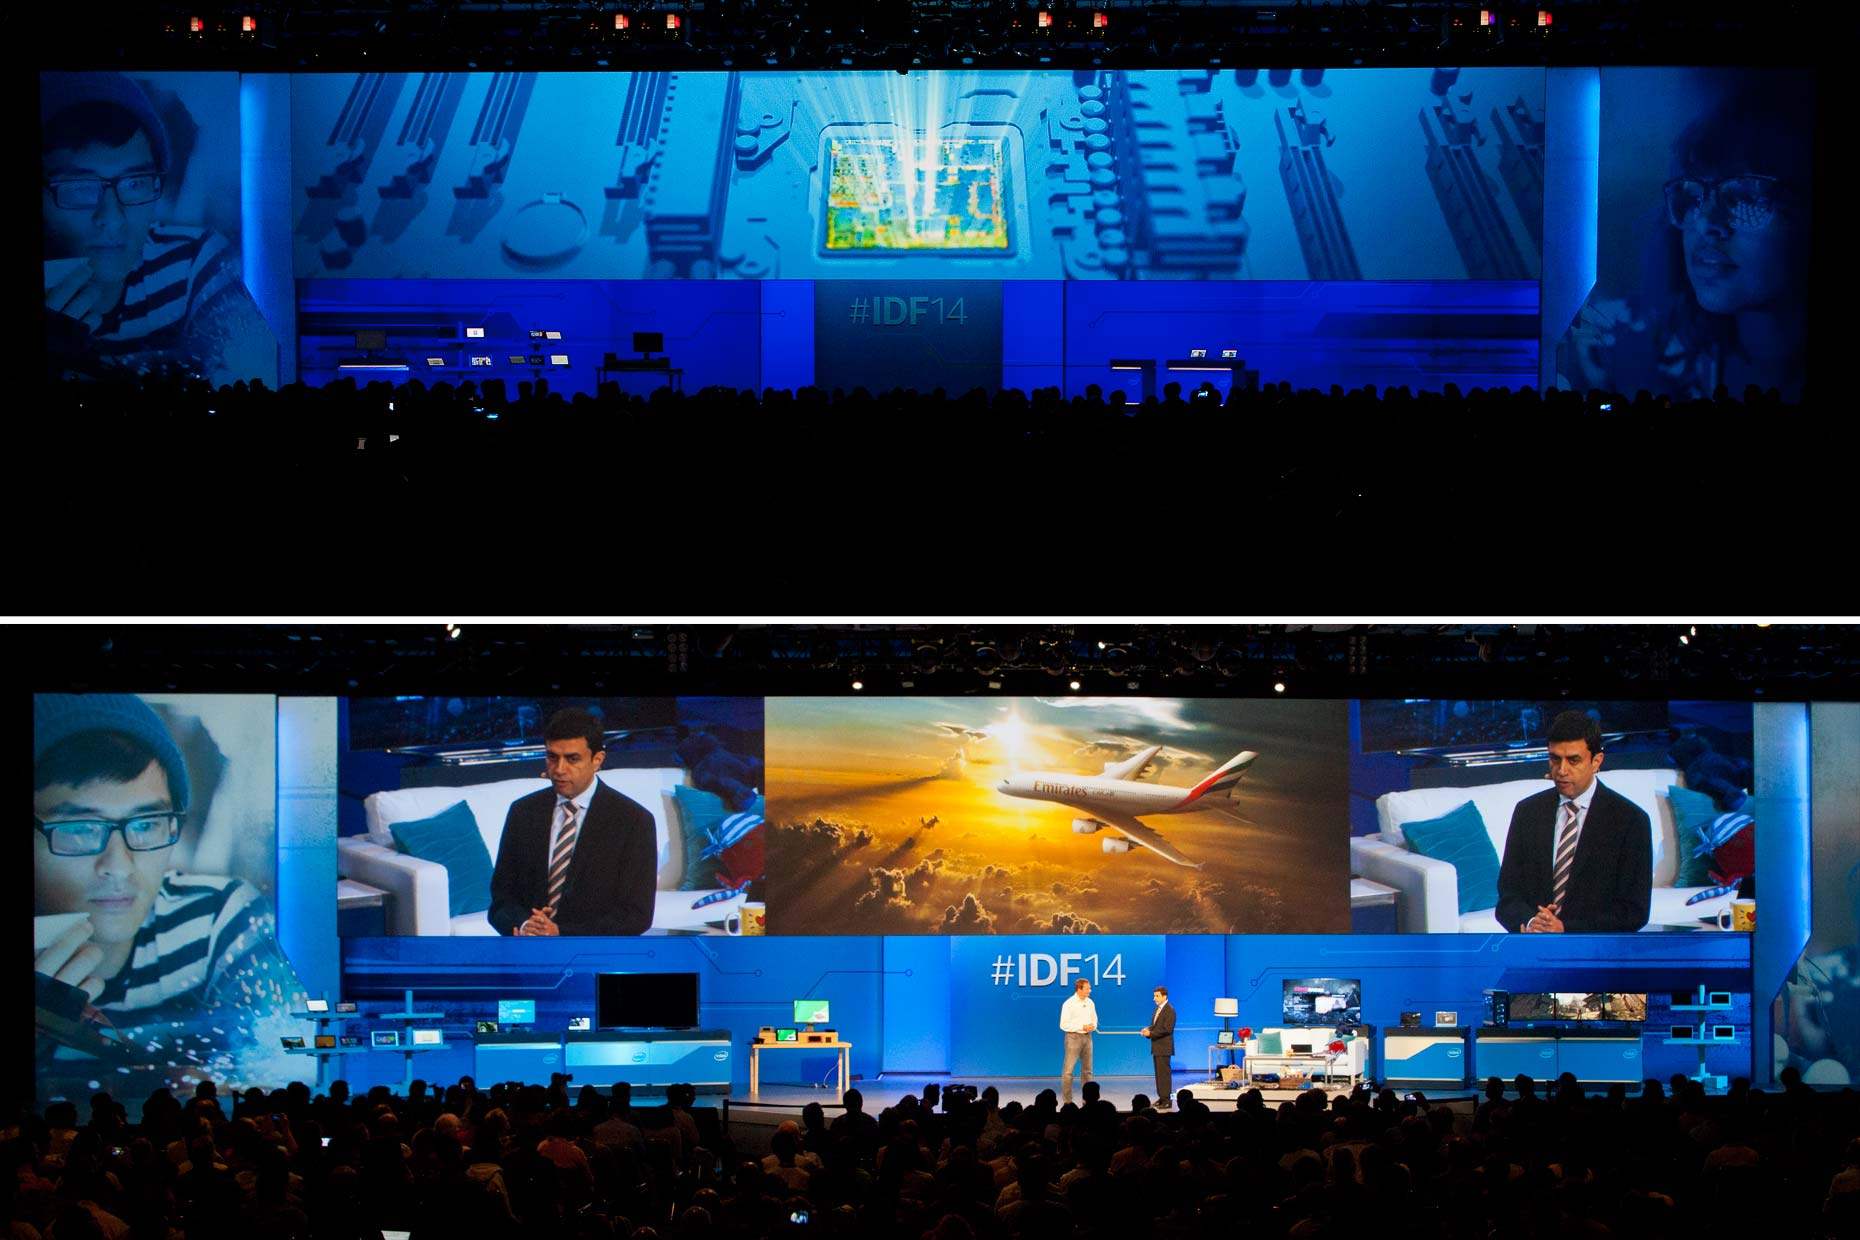 2  IDF14 Intel Developers Forum 2014